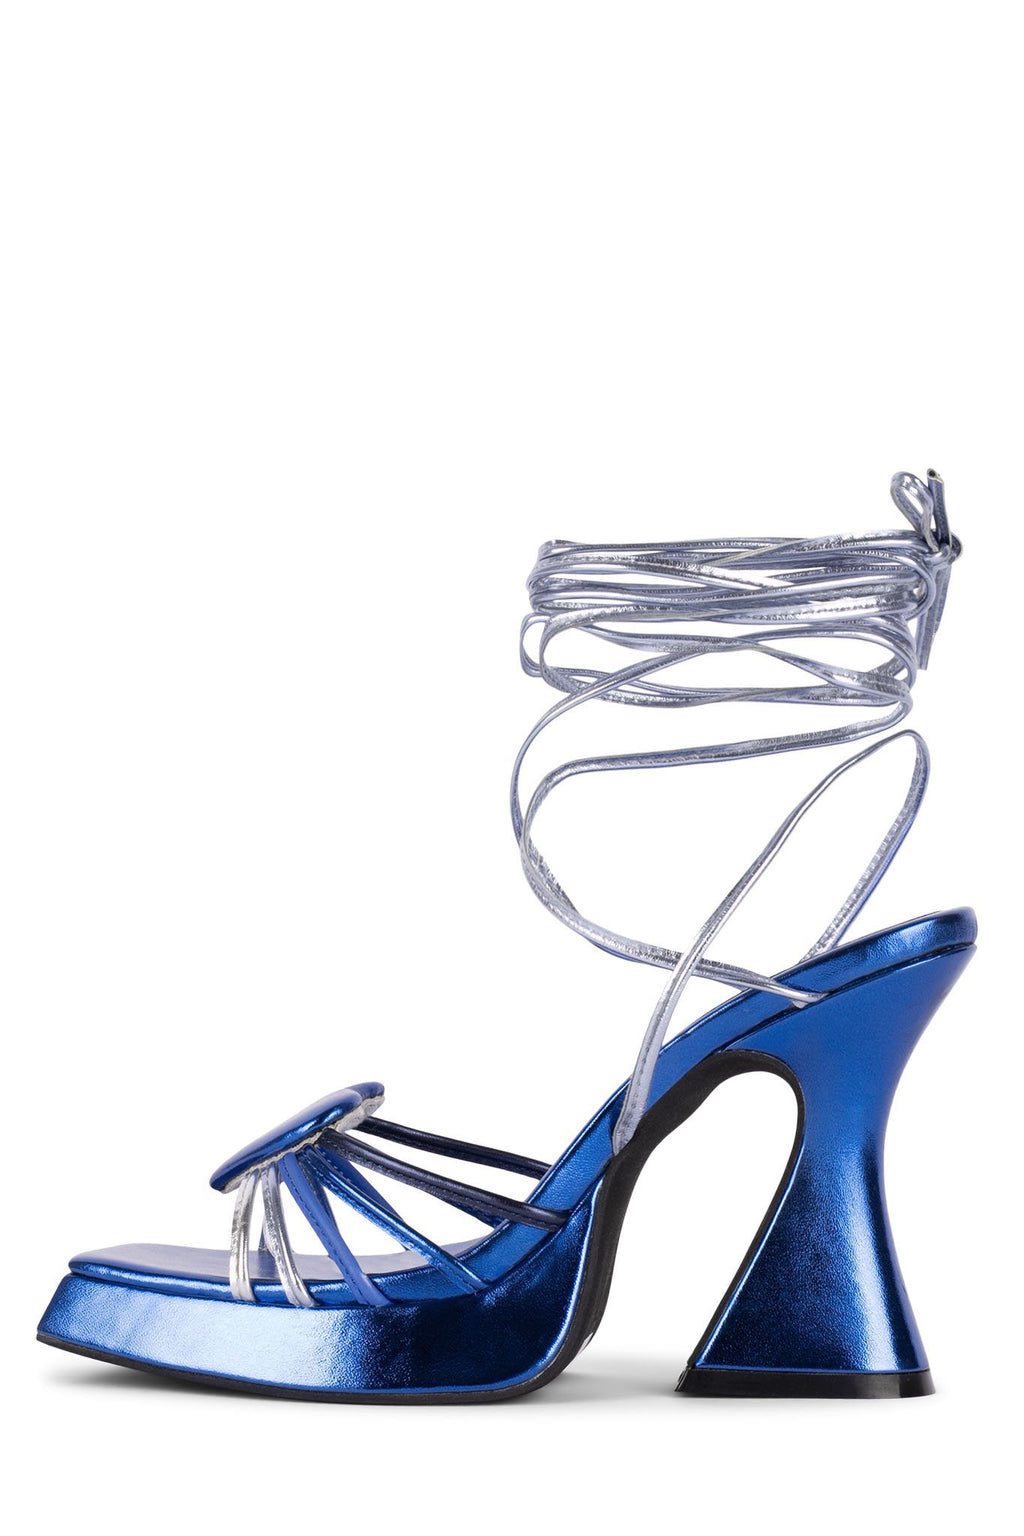 LUV-BELOW Platform Sandal HS Blue Metallic Multi 5